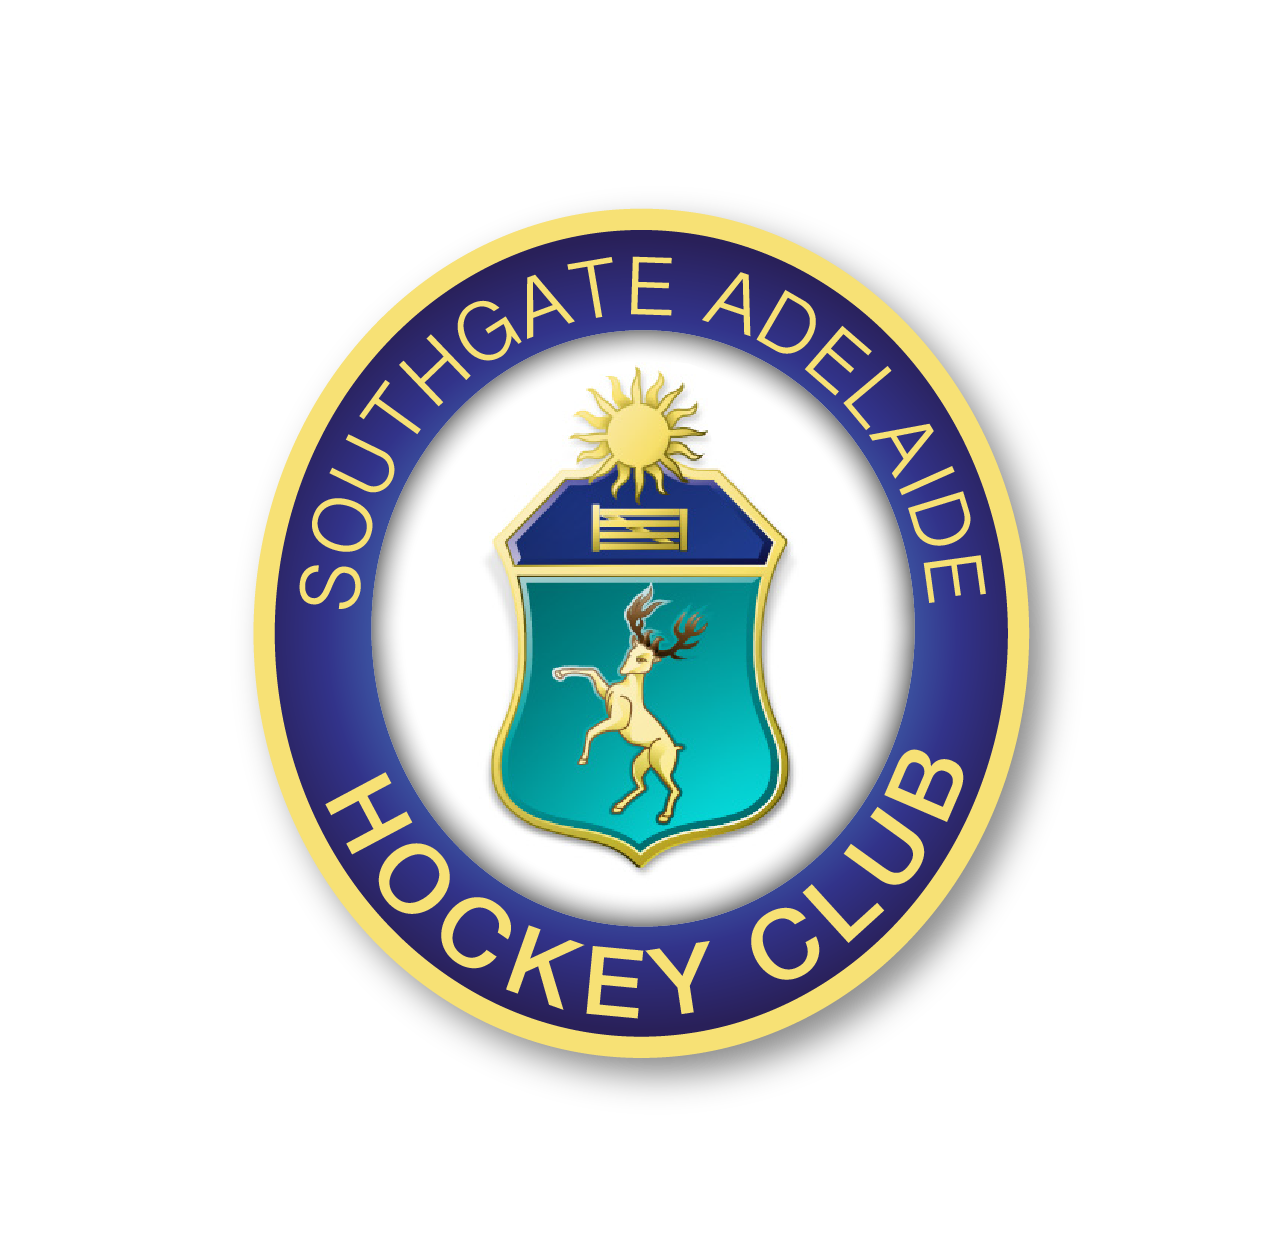 Southgate Adelaide Hockey Club